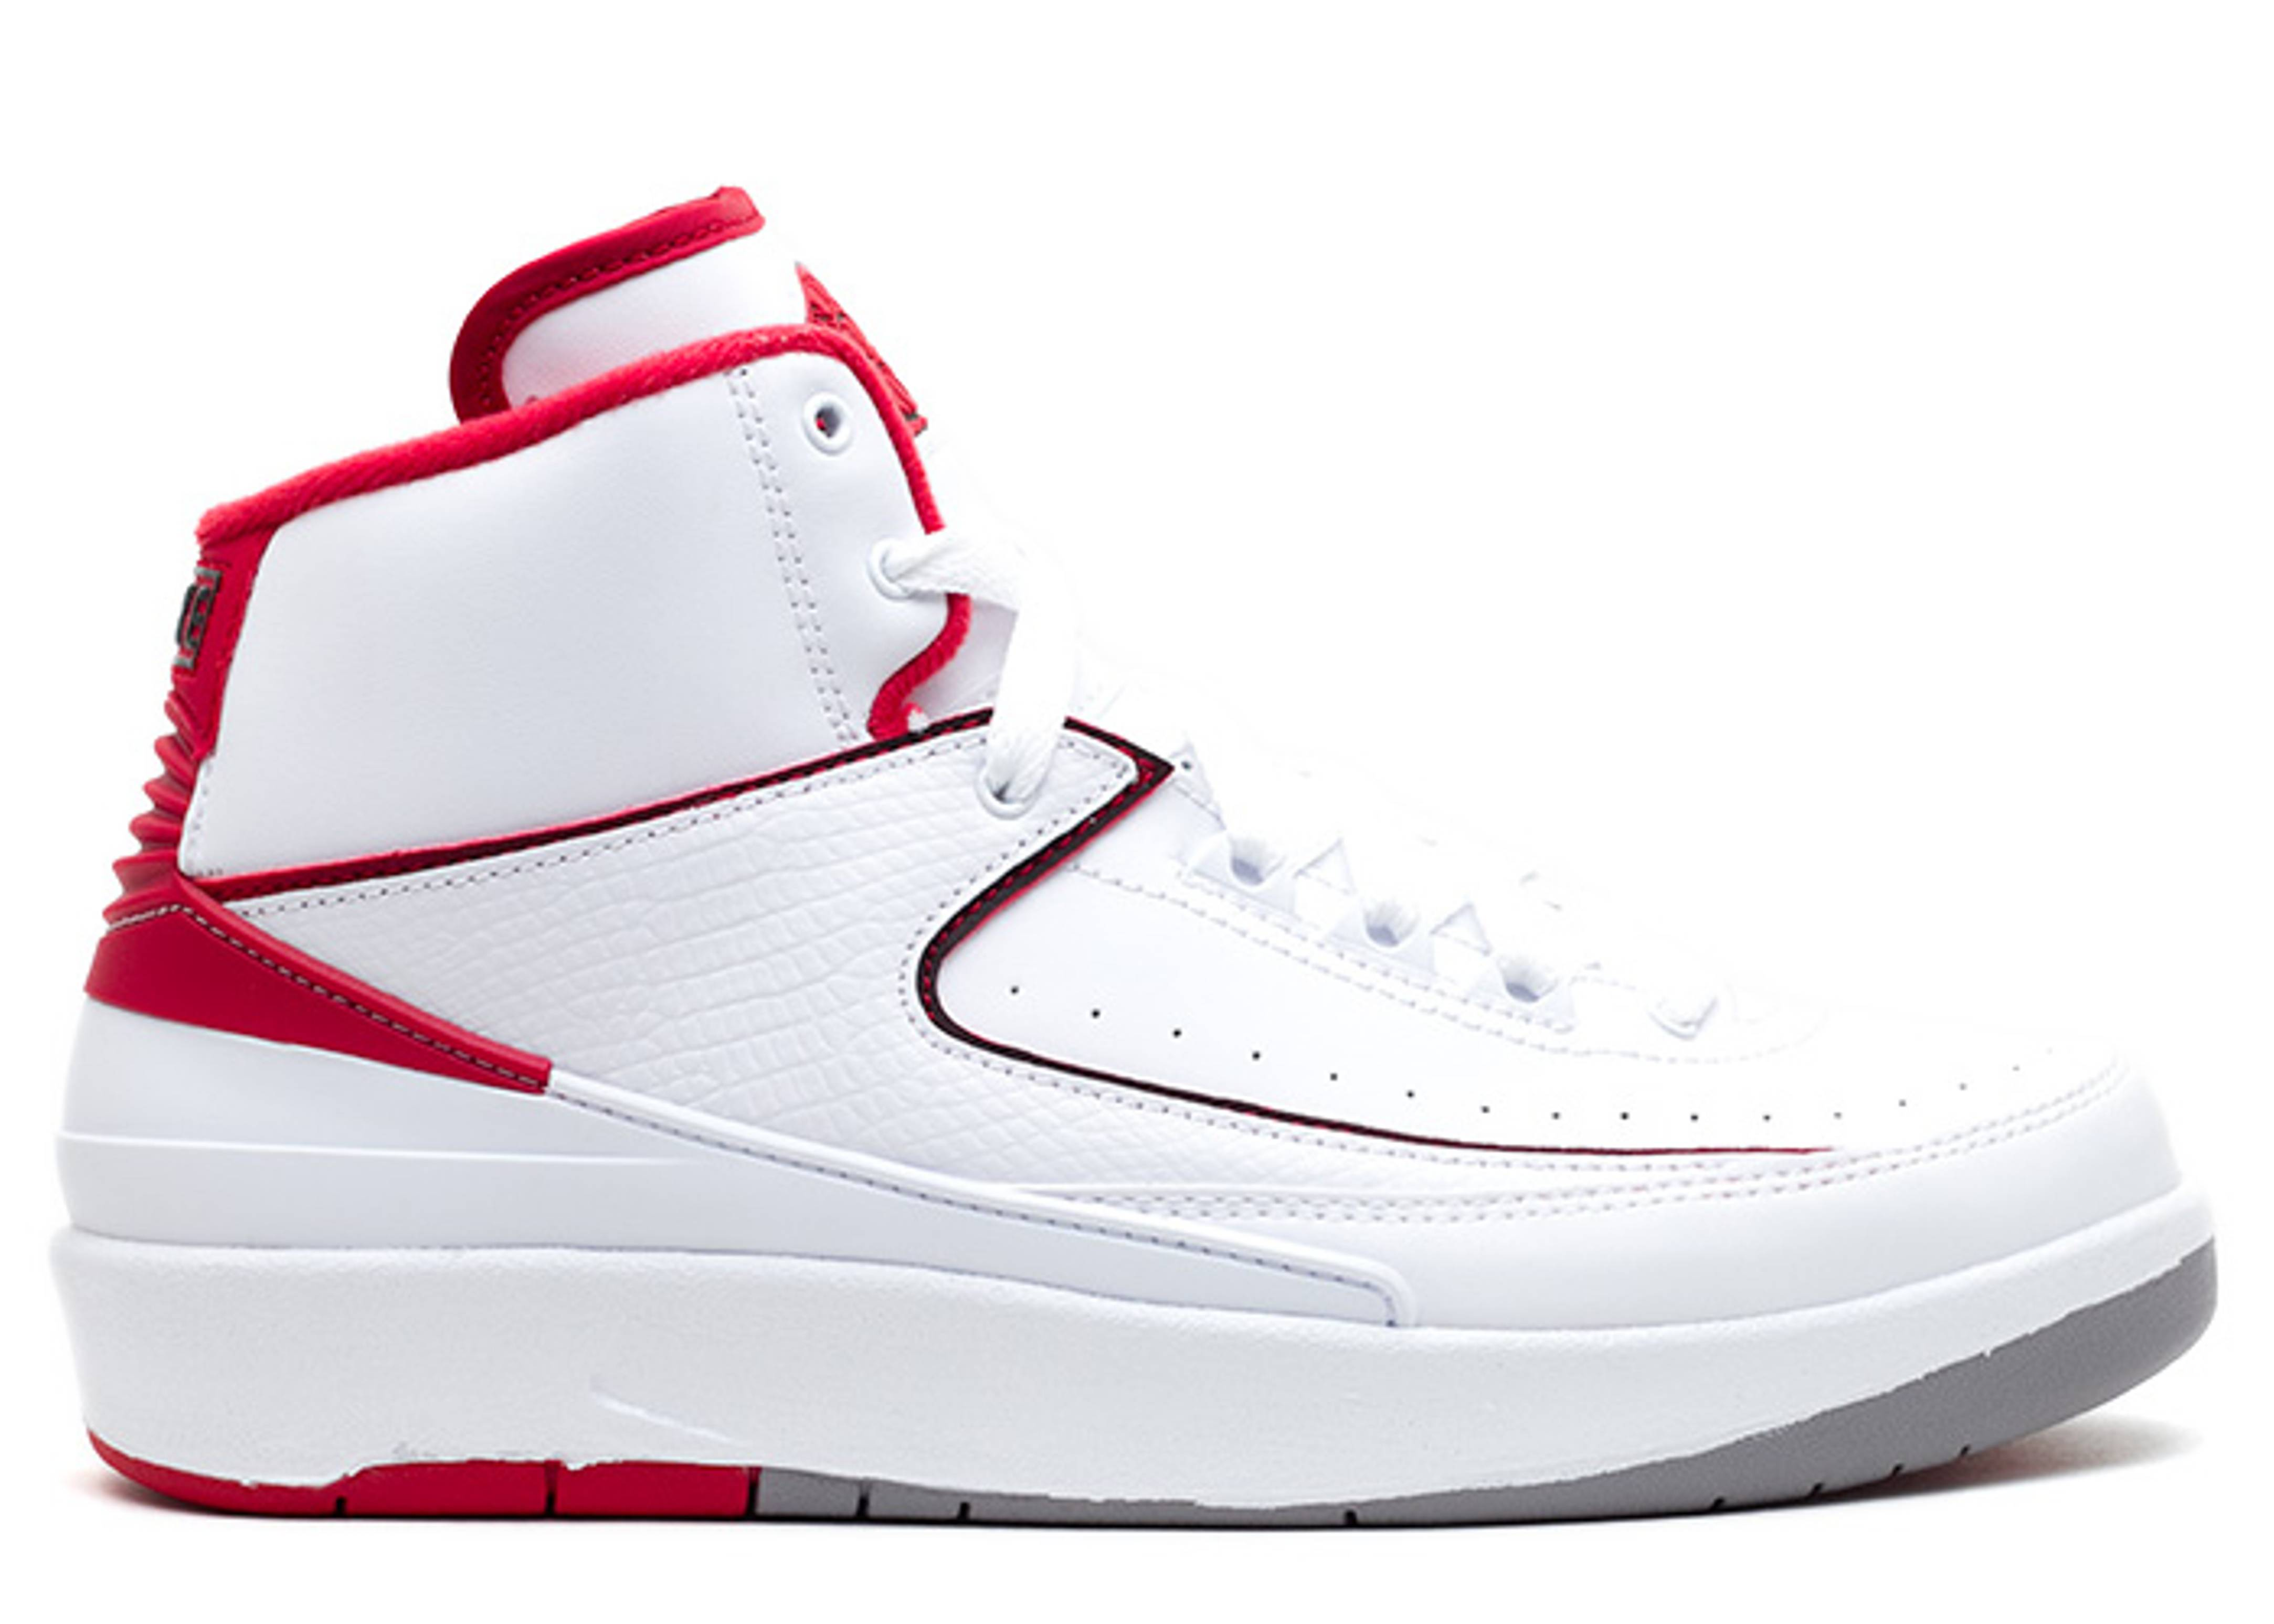 Air Jordan 2 Retro BG White Varsity - 395718 102